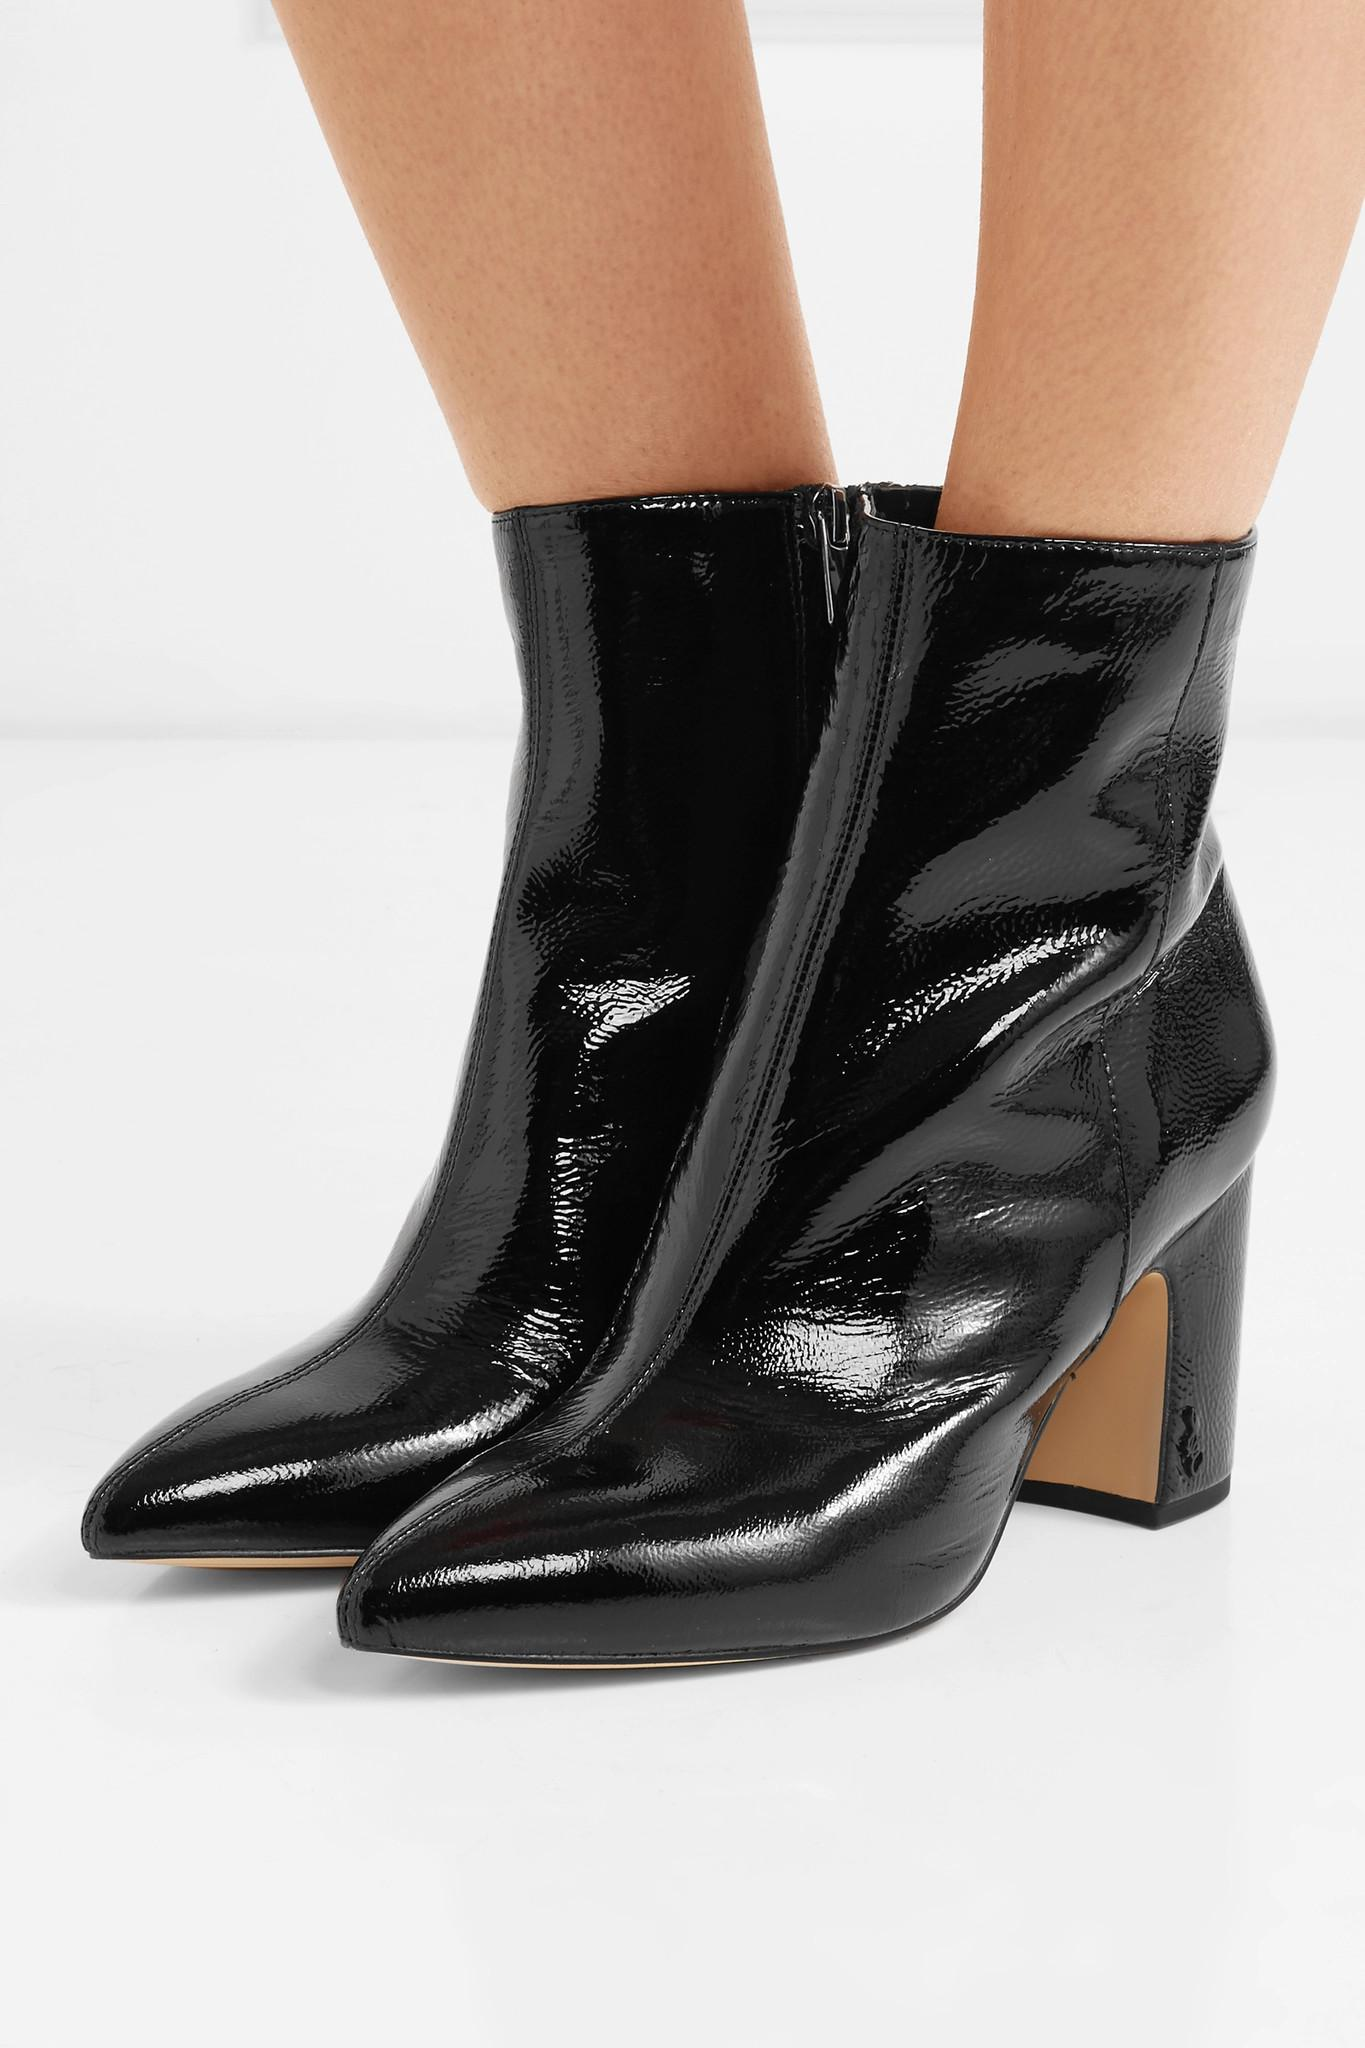 17c26ebea2a Sam Edelman - Black Hilty Patent-leather Ankle Boots - Lyst. View fullscreen